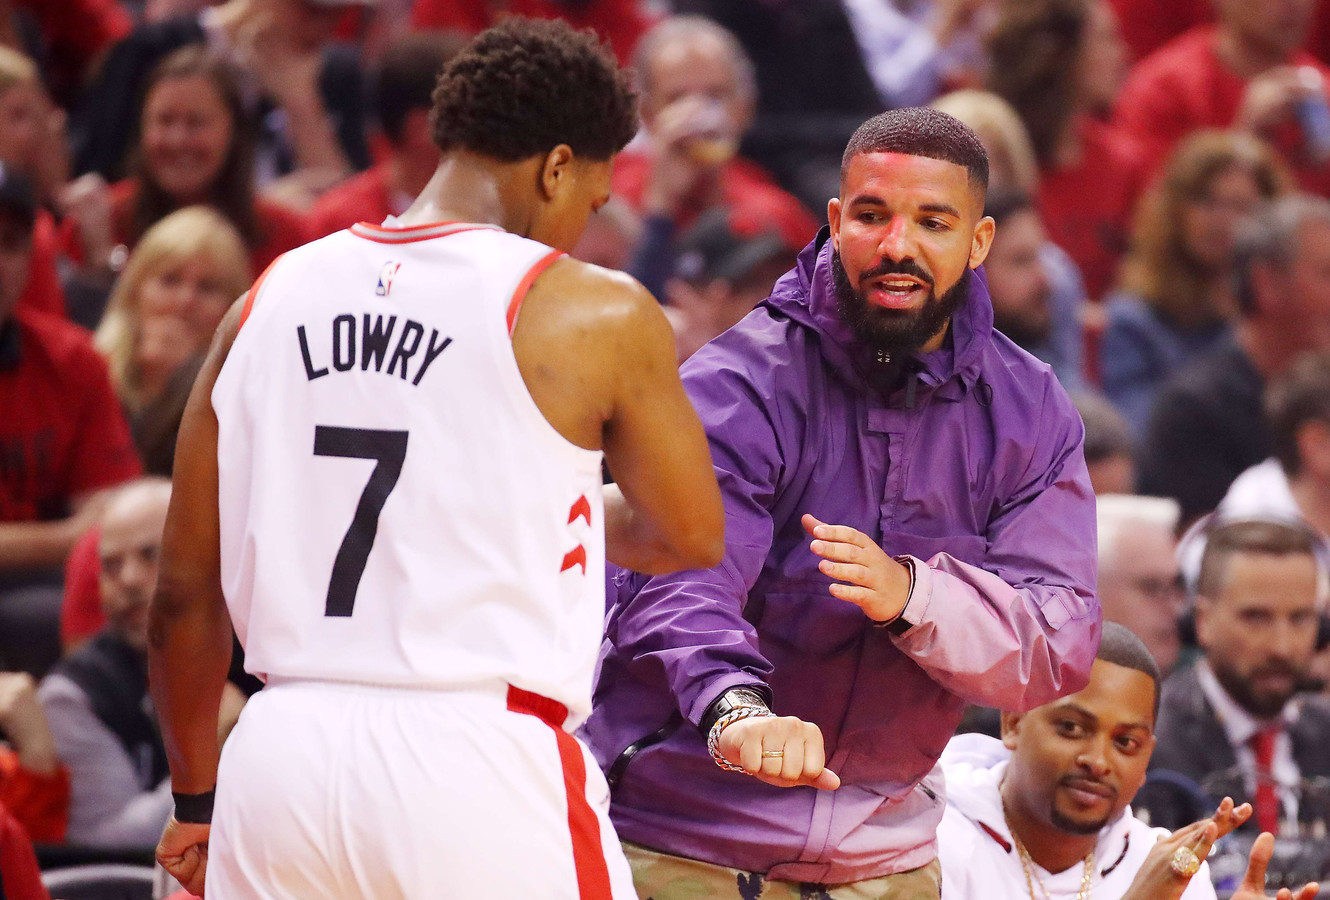 TORONTO, ONTARIO - MAY 19: Rapper Drake fist bumps Kyle Lowry #7 of the Toronto Raptors in game three of the NBA Eastern Conference Finals between the Milwaukee Bucks and the Toronto Raptors at Scotiabank Arena on May 19, 2019 in Toronto, Canada. NOTE TO USER: User expressly acknowledges and agrees that, by downloading and or using this photograph, User is consenting to the terms and conditions of the Getty Images License Agreement.   Gregory Shamus/Getty Images/AFP == FOR NEWSPAPERS, INTERNET, TELCOS & TELEVISION USE ONLY ==